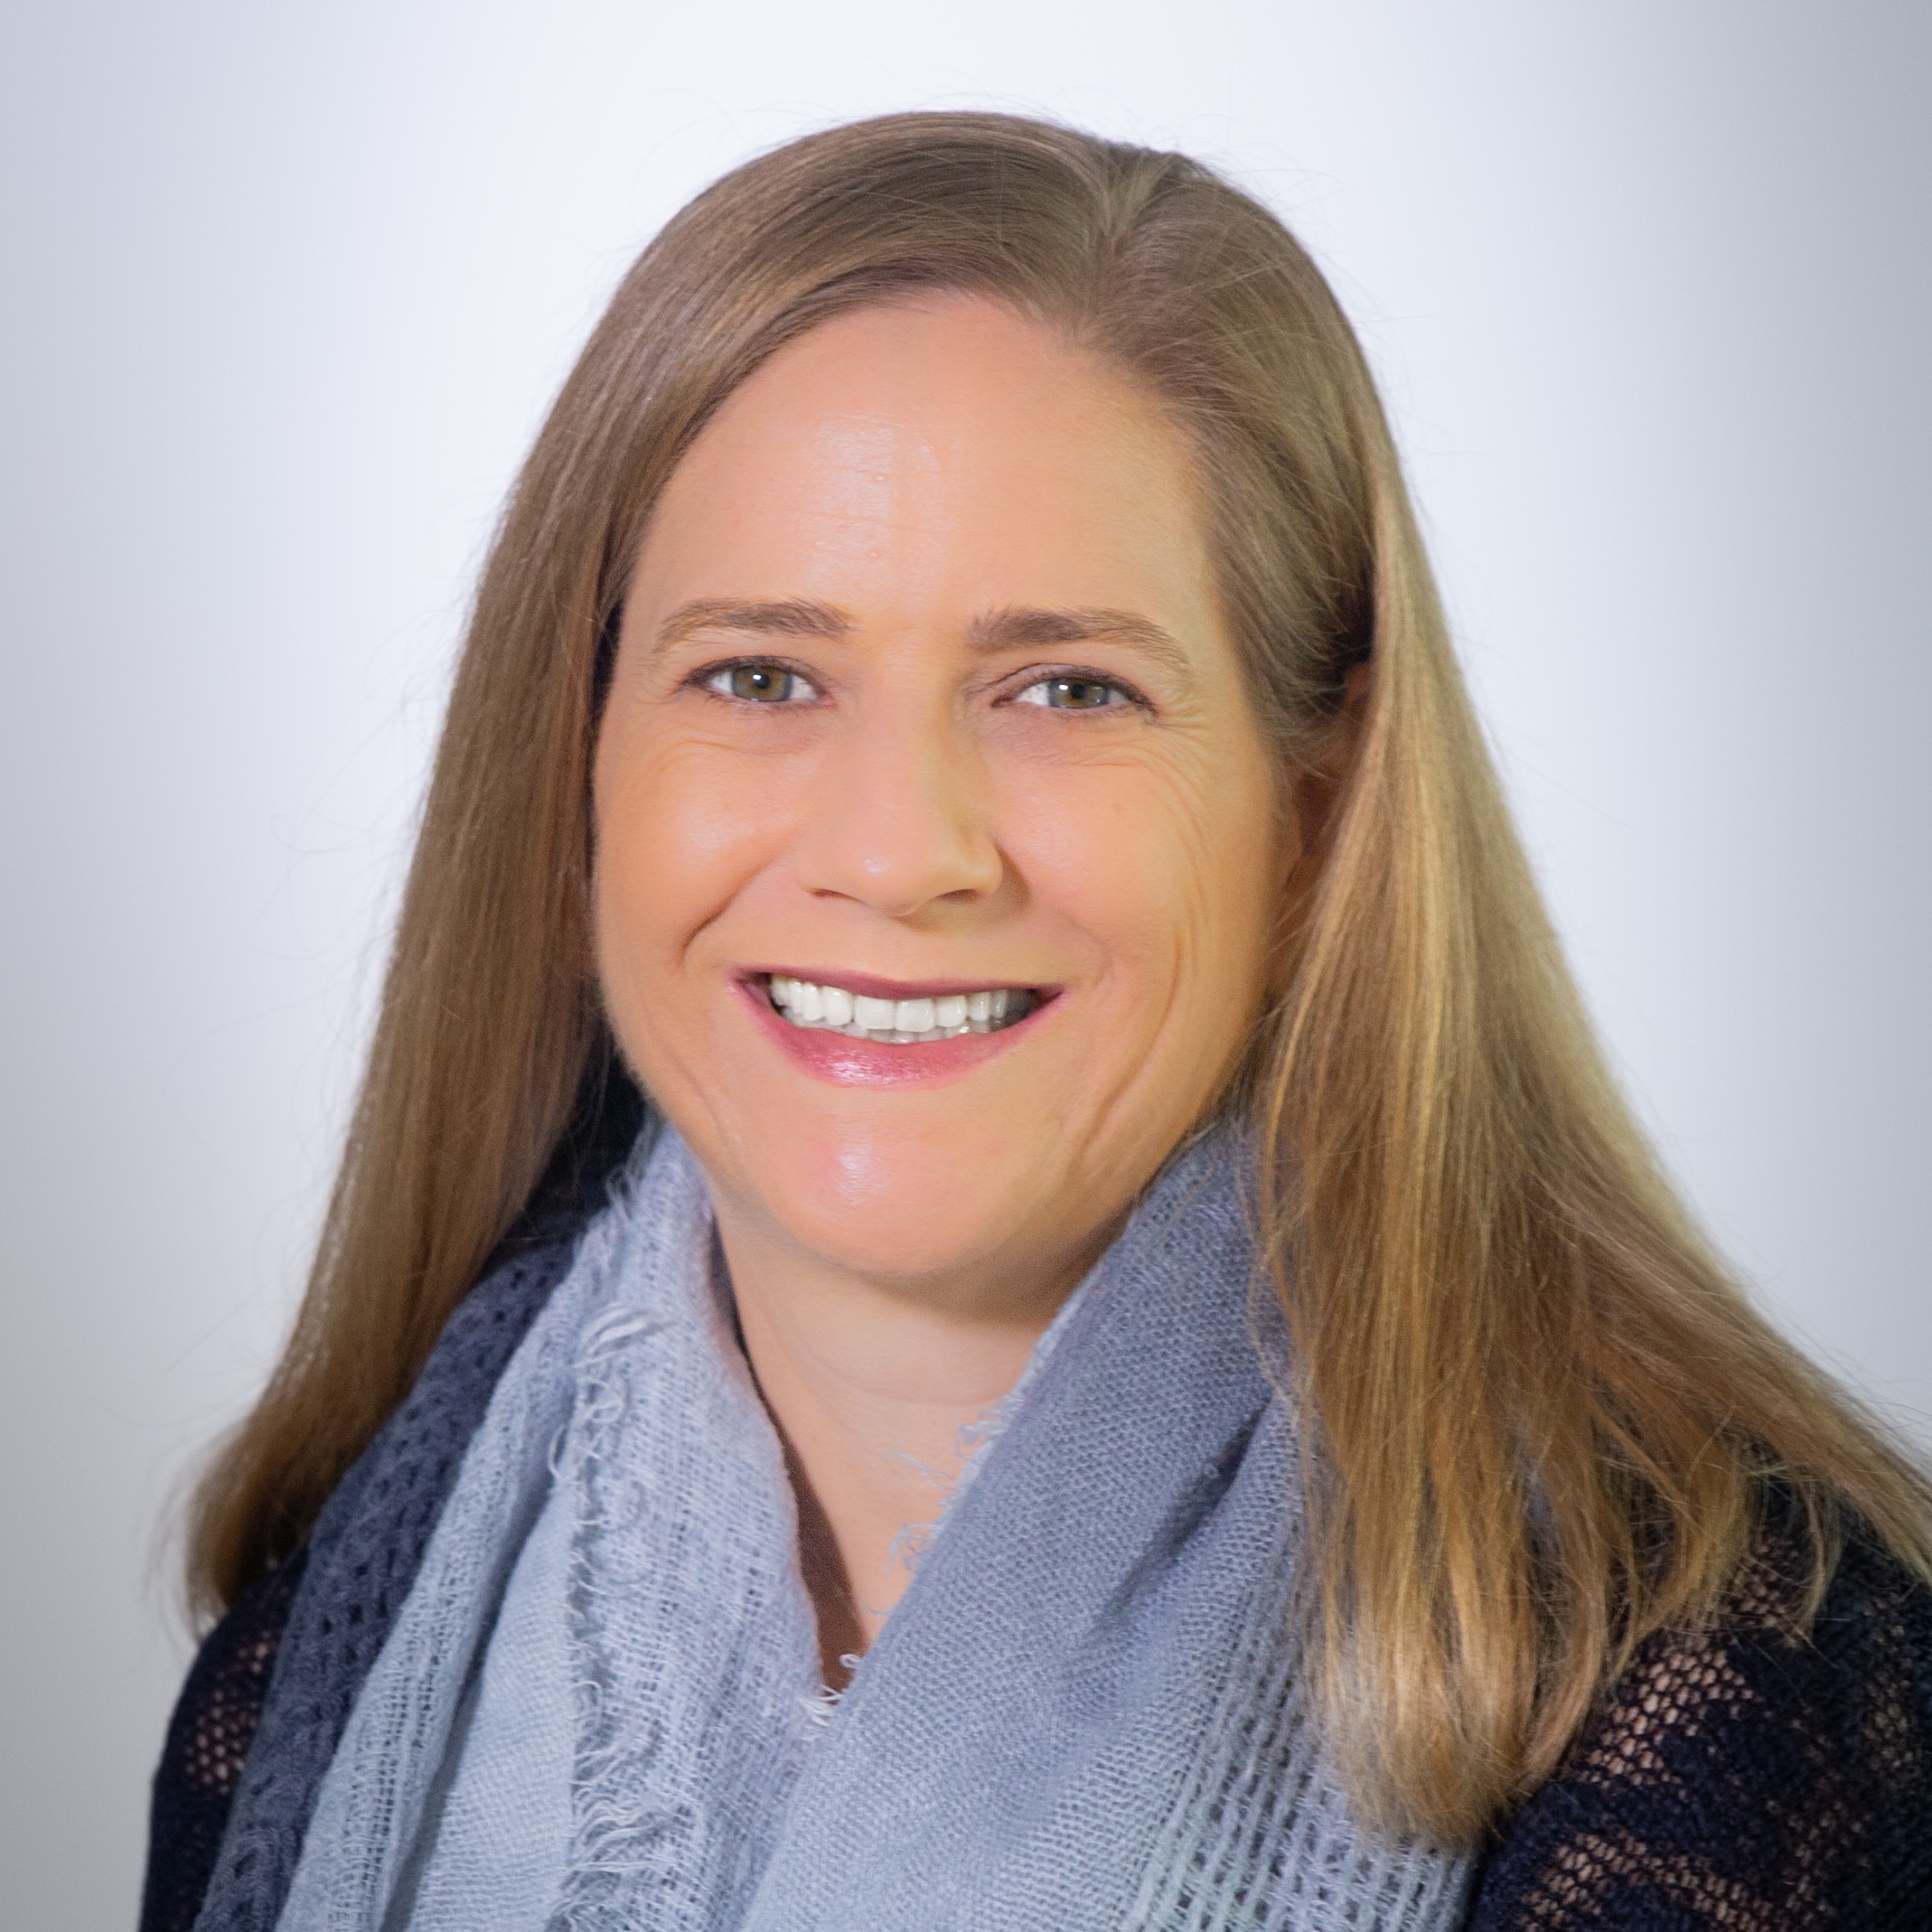 Amy Staples, Chief of the Division of Endocrinology